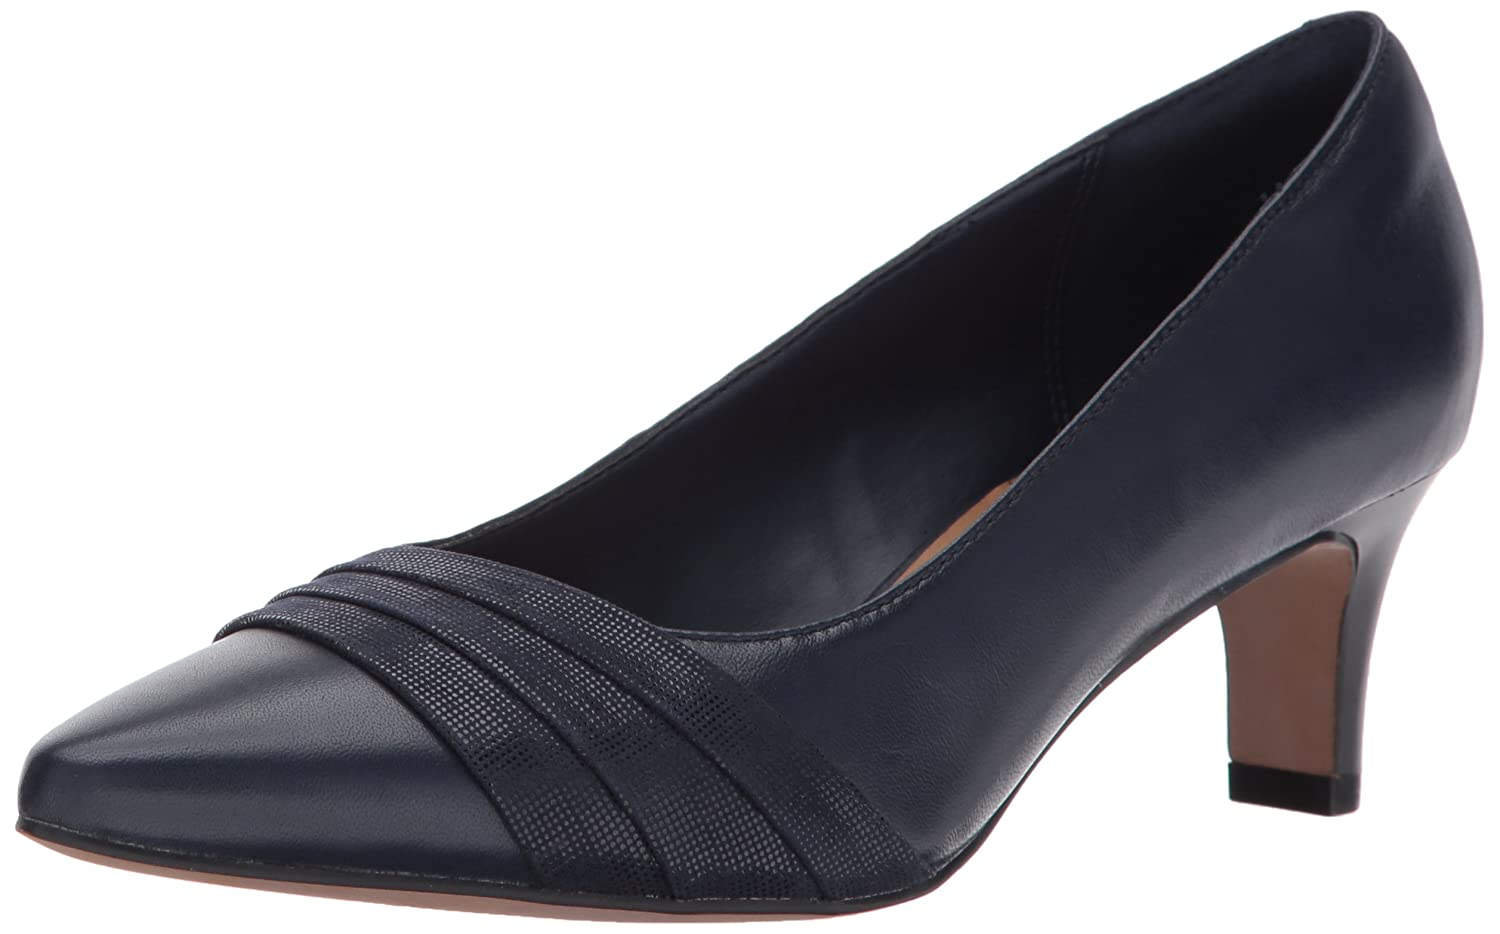 CLARKS Women's Crewso Madie Dress Pump B01MTY5PH5 7 B(M) US|Navy